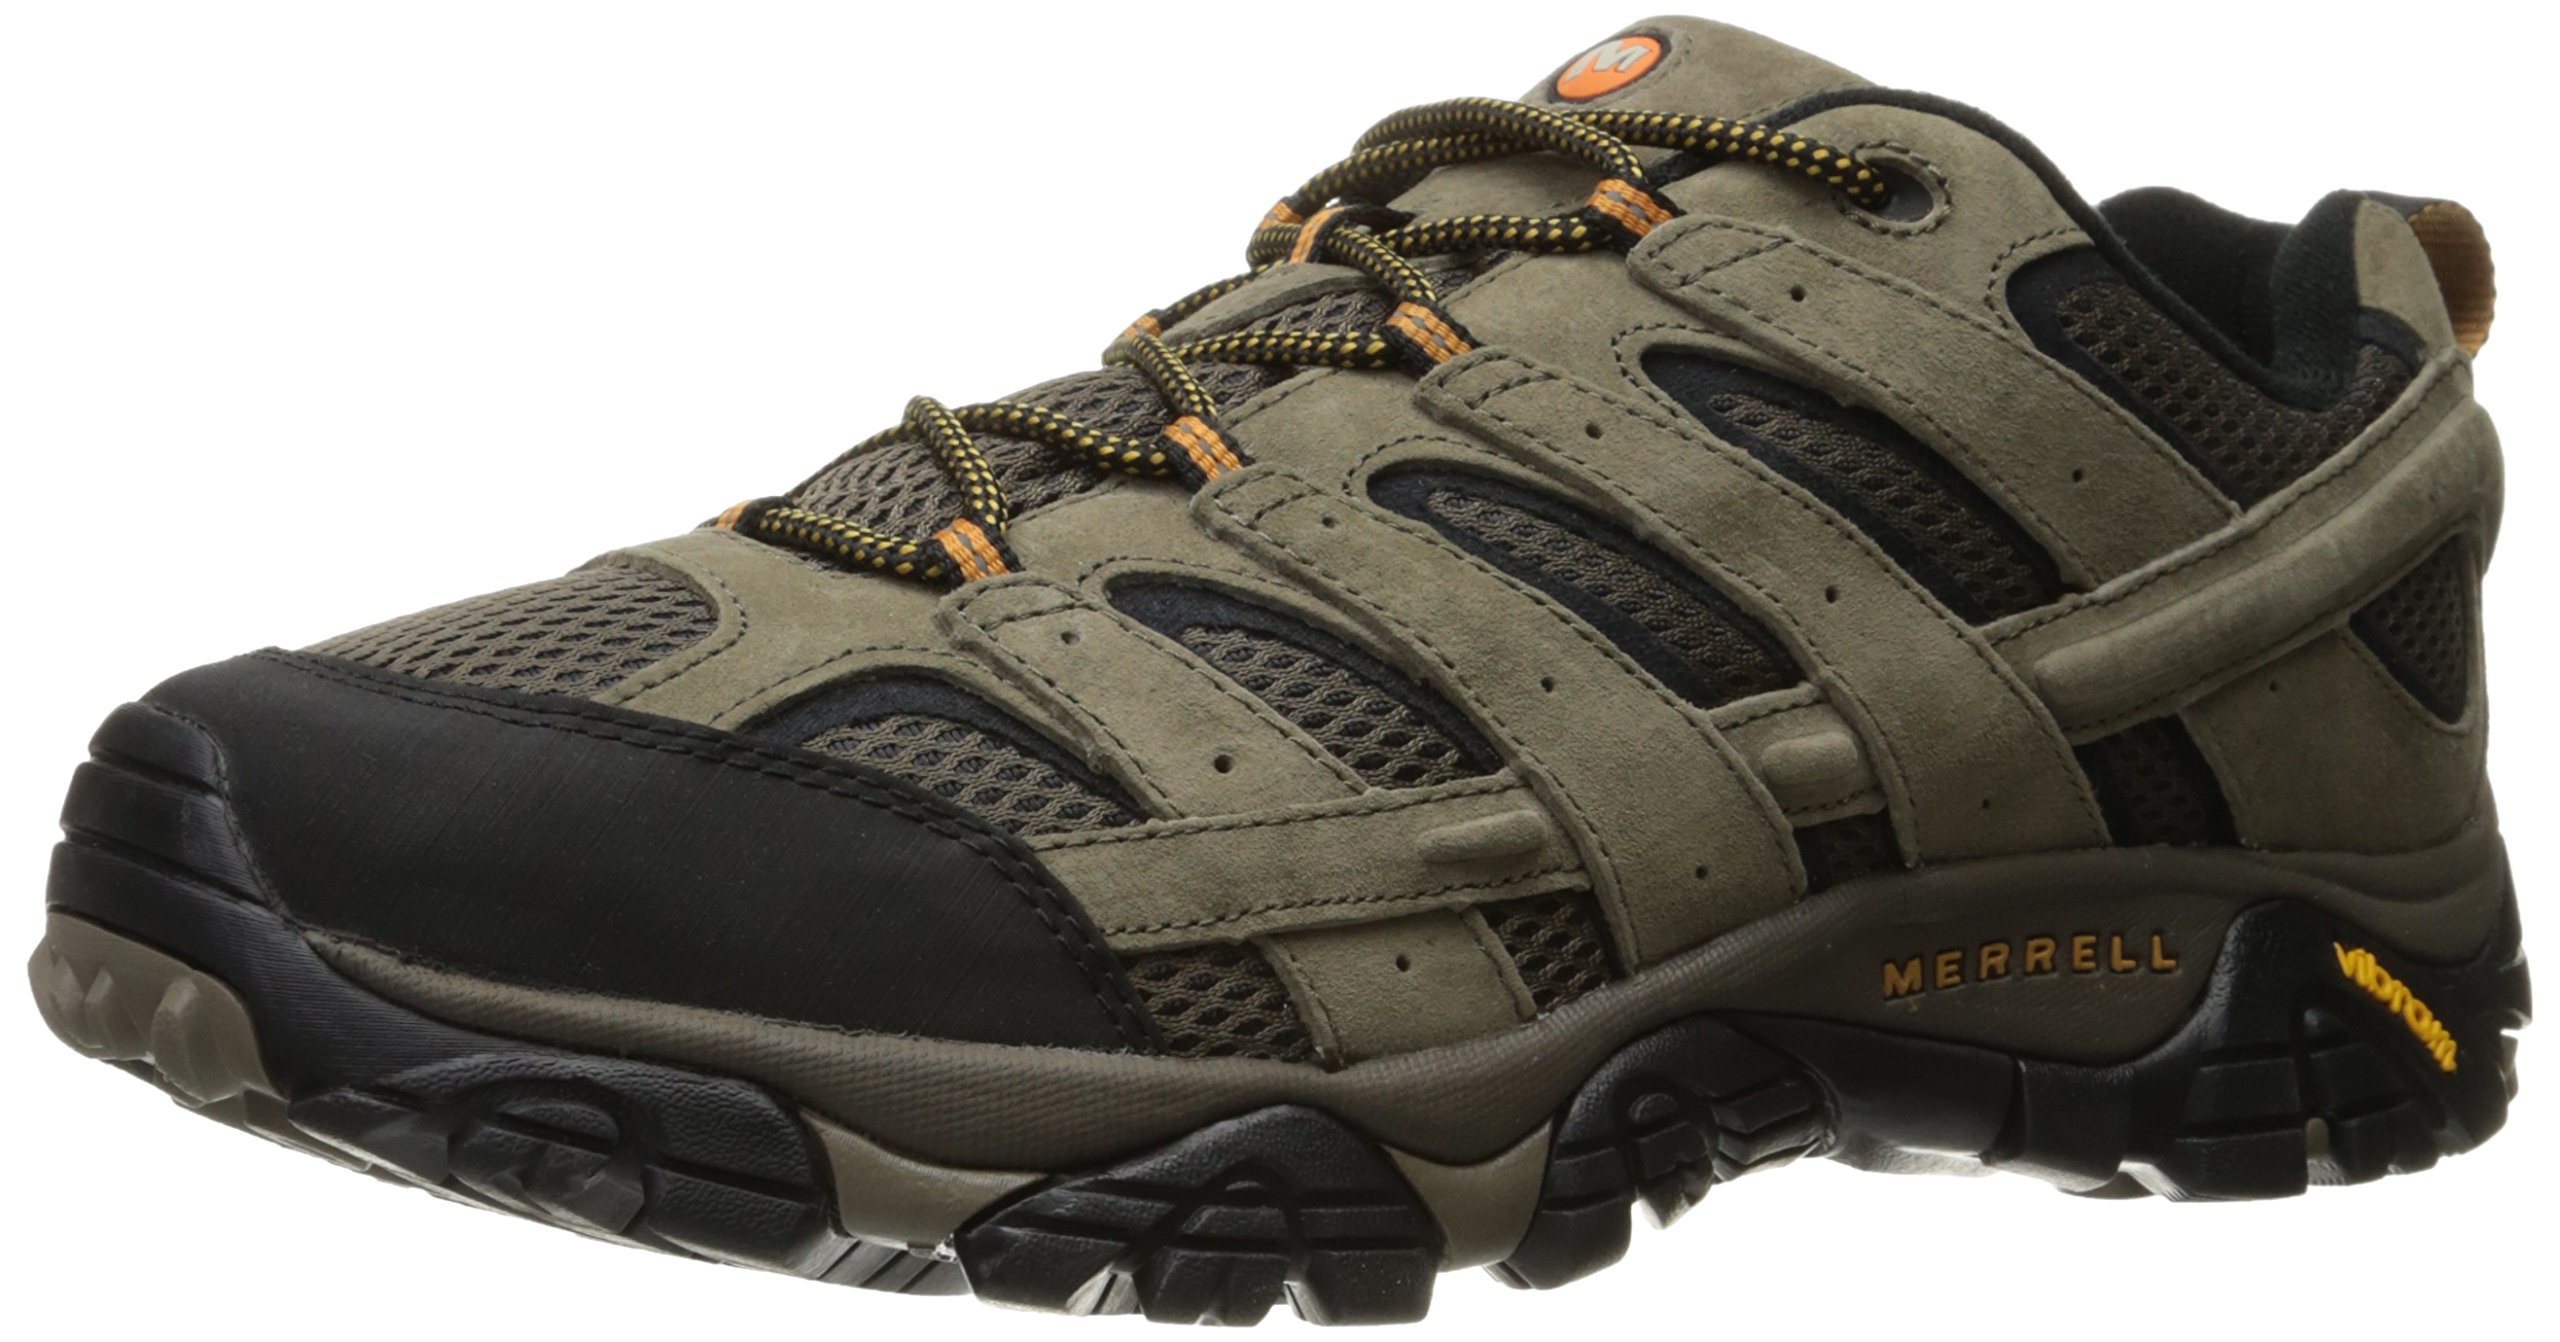 Merrell Men's Moab 2 Vent Hiking Shoe, Walnut, 10 2E US by Merrell